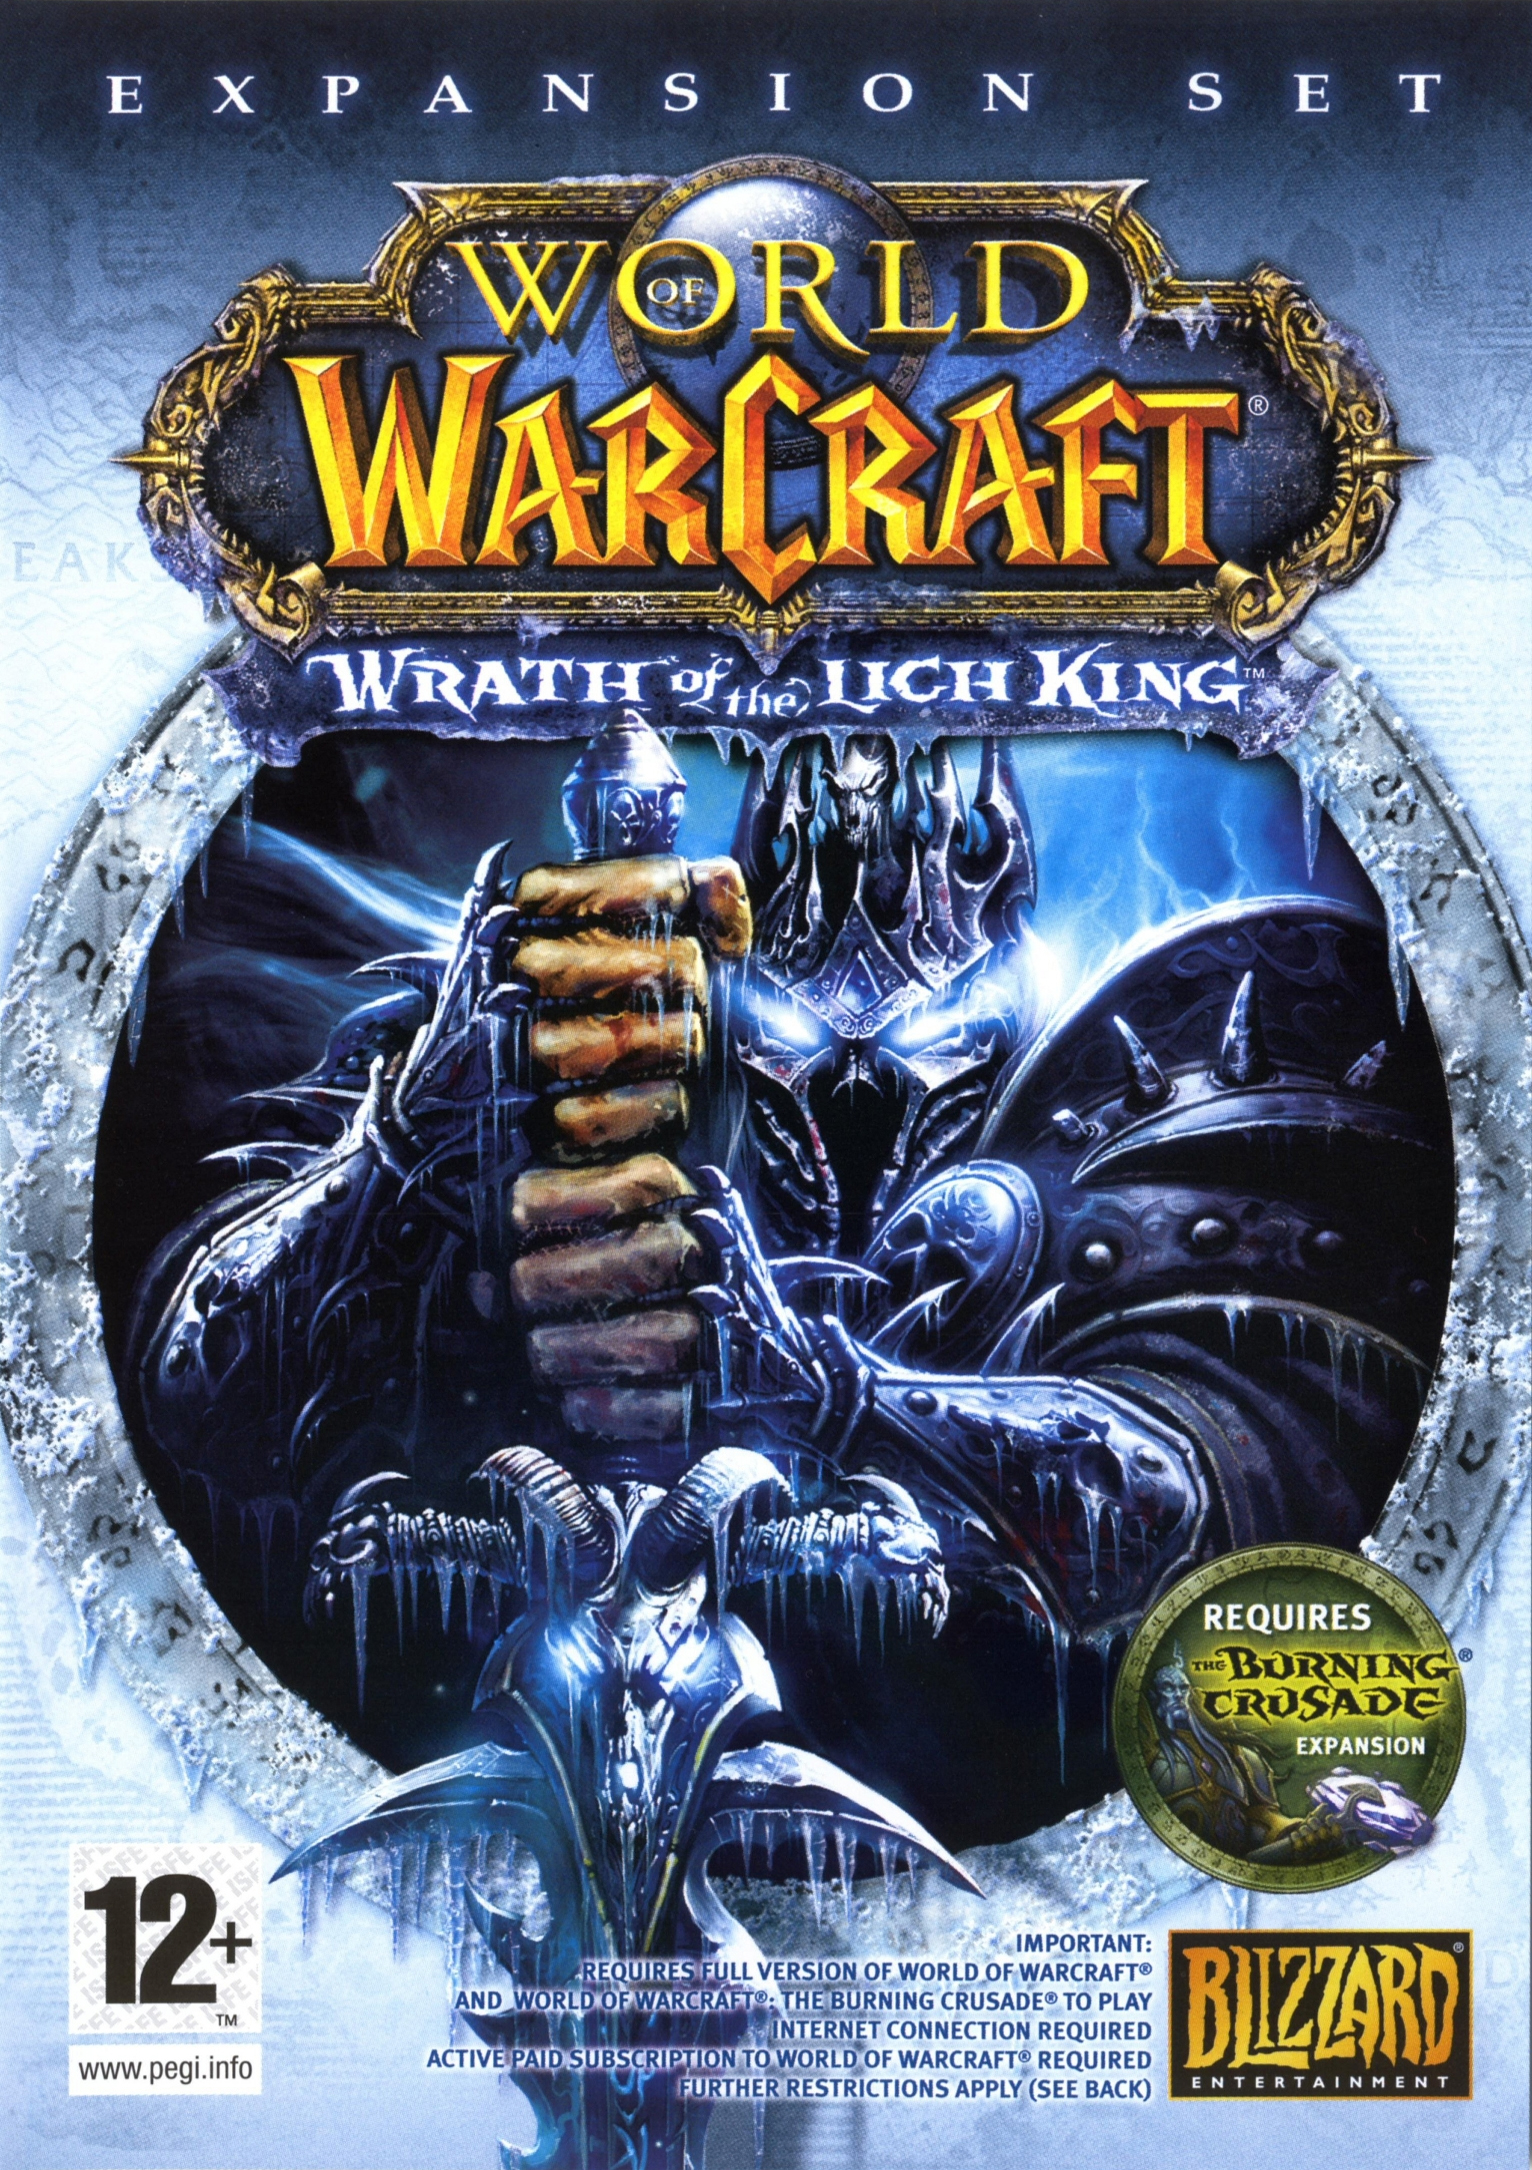 https://upload.wikimedia.org/wikipedia/ru/7/72/World_of_Warcraft_Wrath_of_the_Lich_King_Cover_Art.jpg